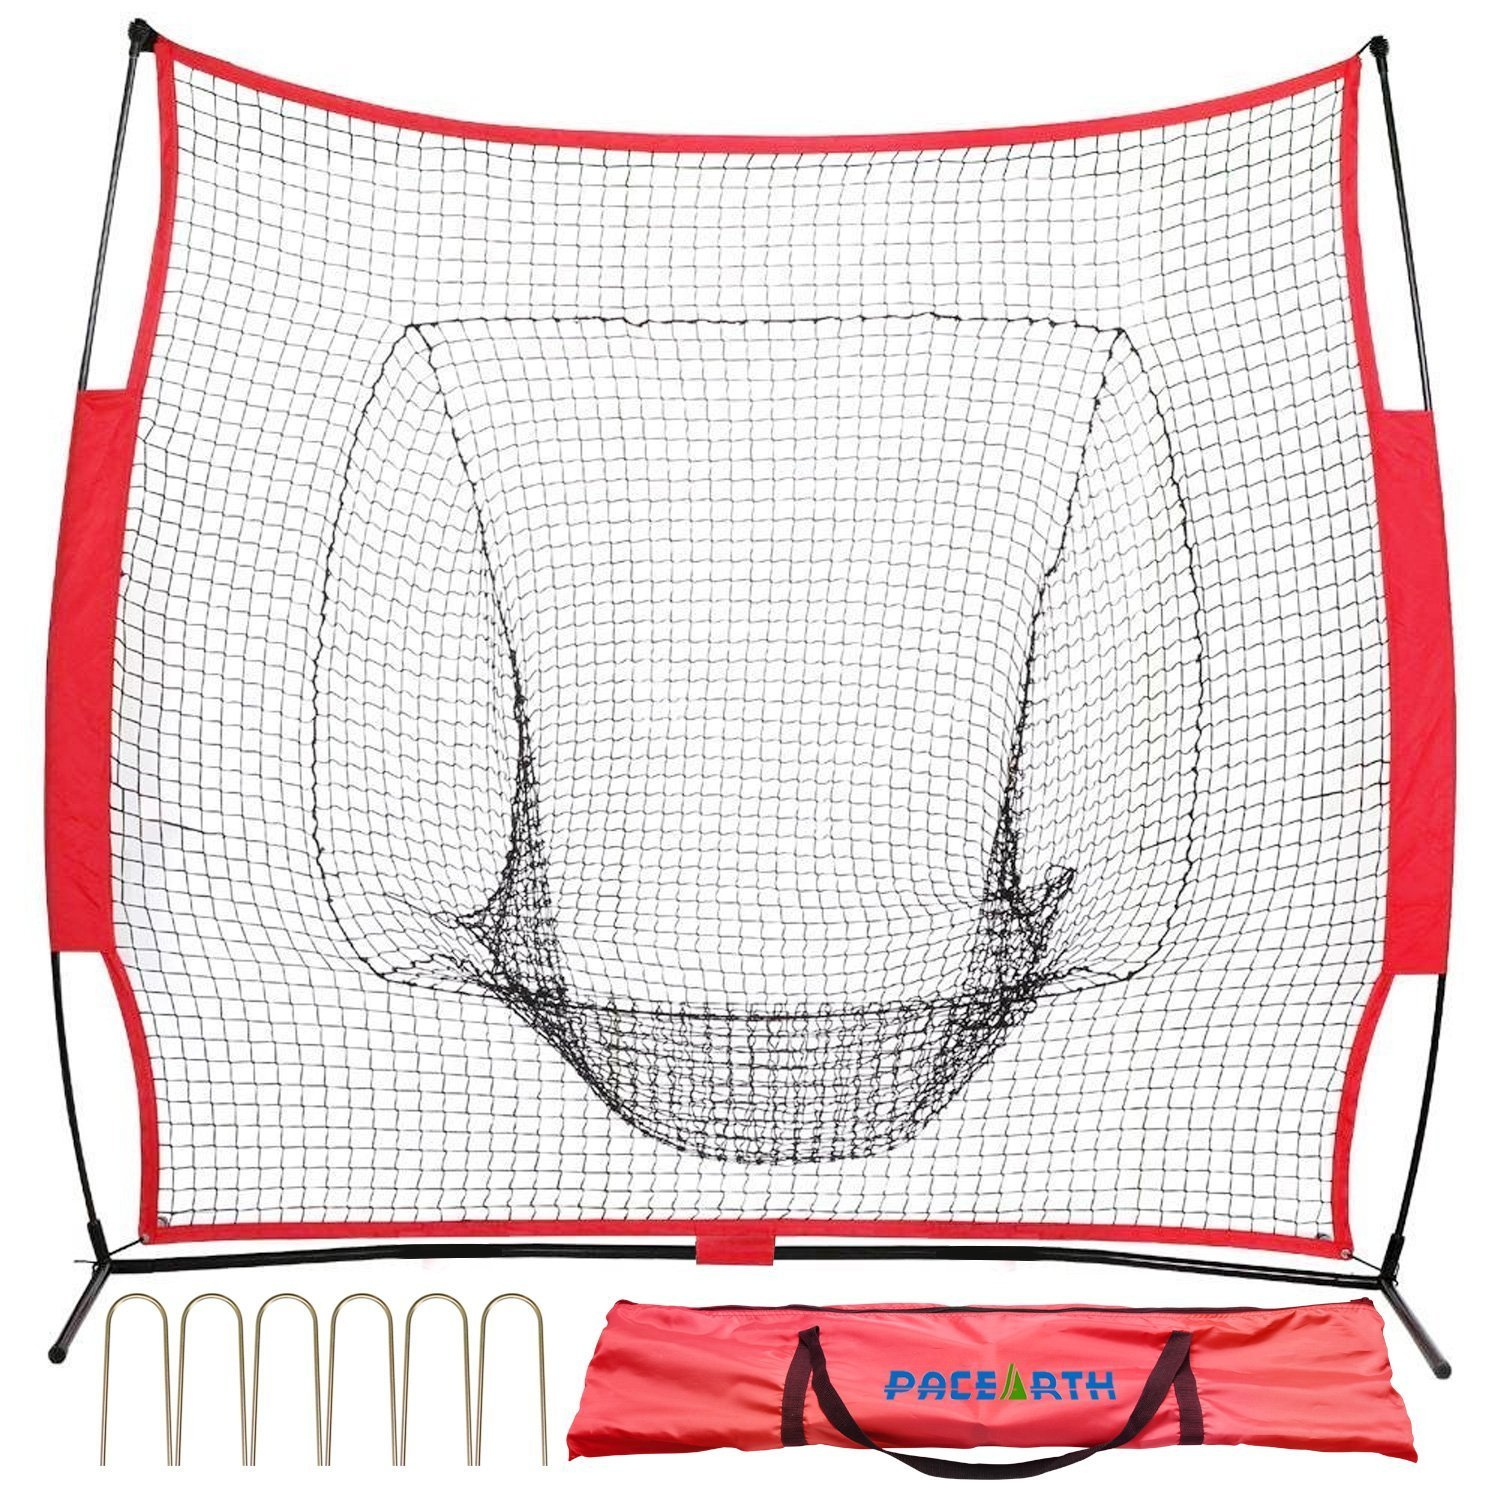 PACEARTH Baseball and Softball Practice Net 7x7 by PACEARTH